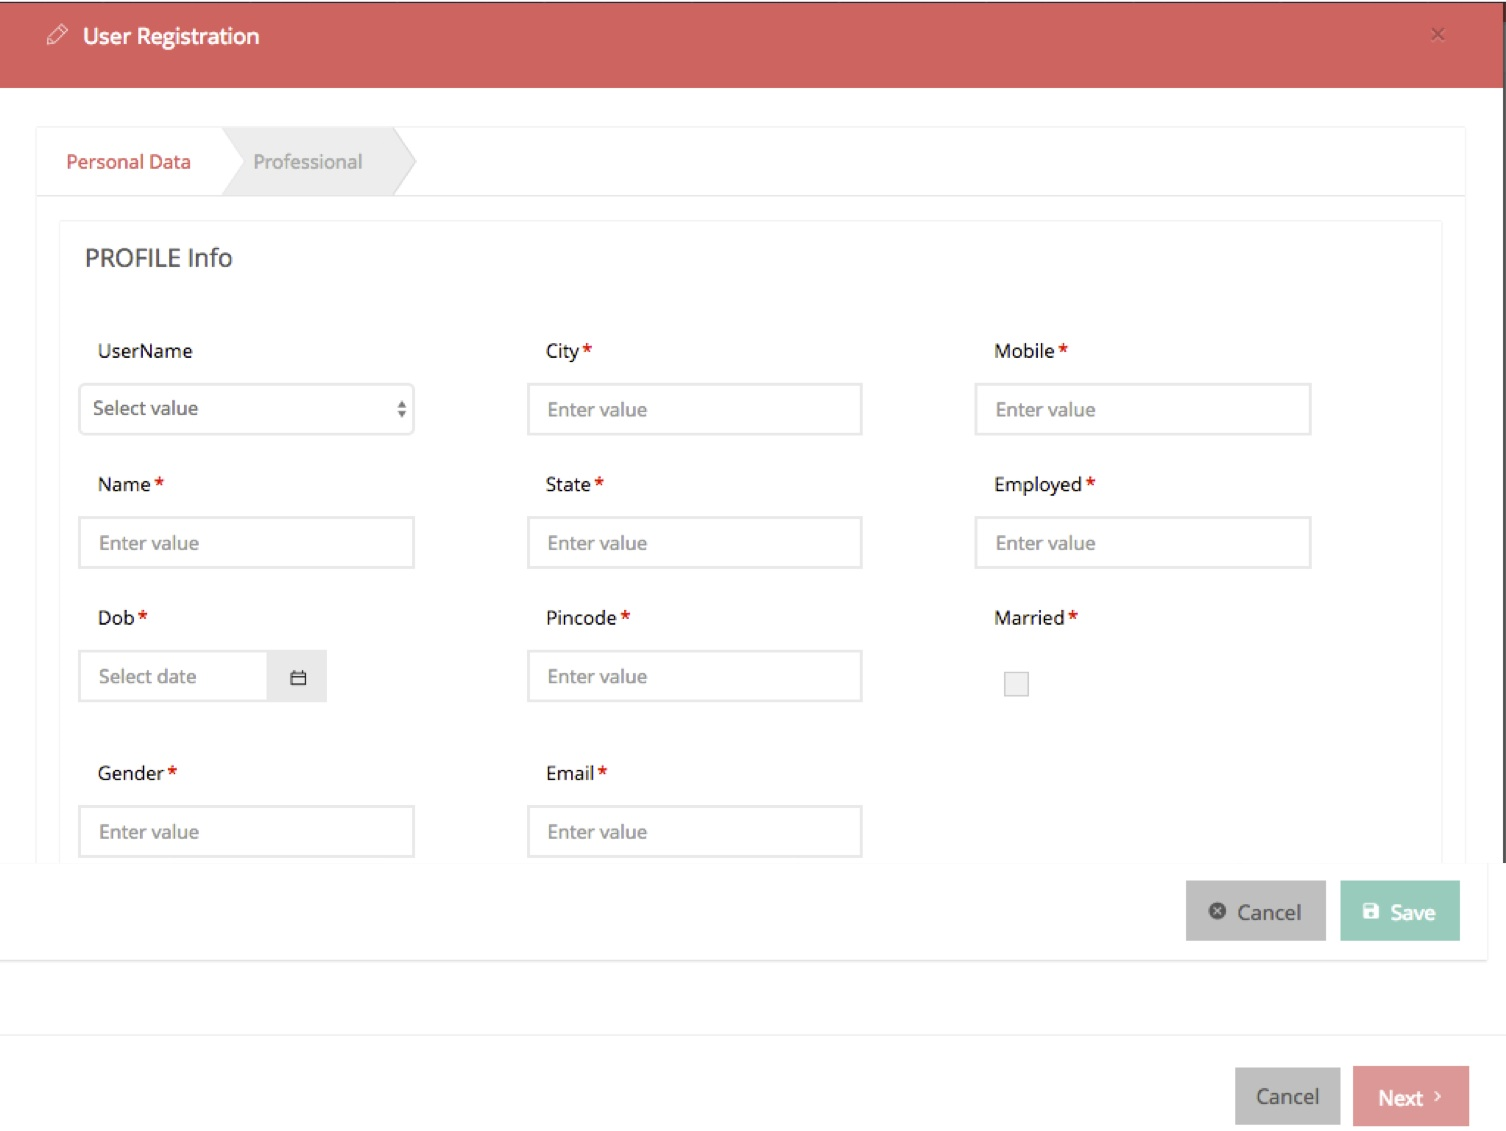 User registration forms can also be created with WaveMaker's templates